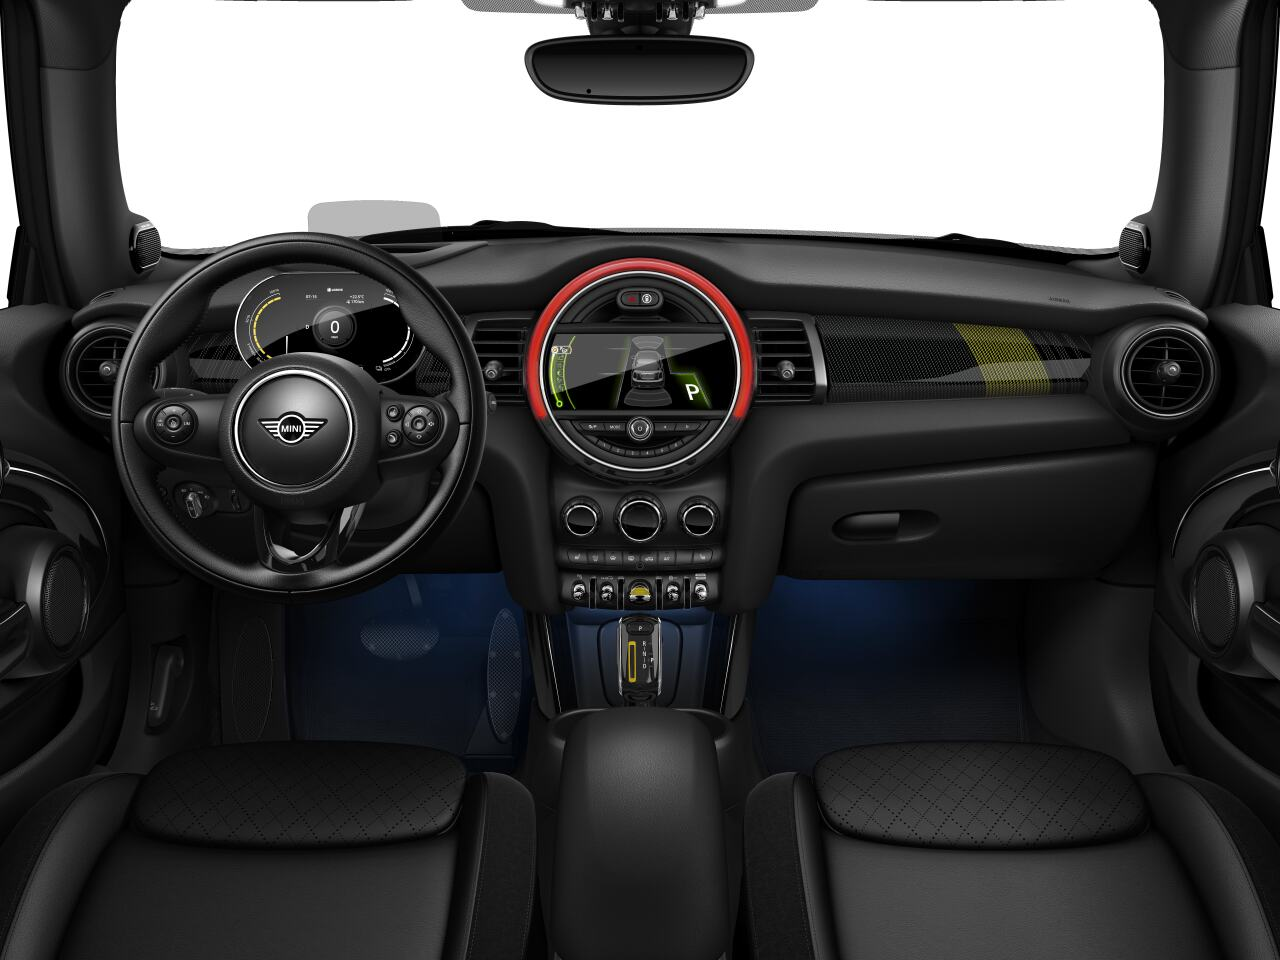 Mini electric – Package L – interior view - dashboard